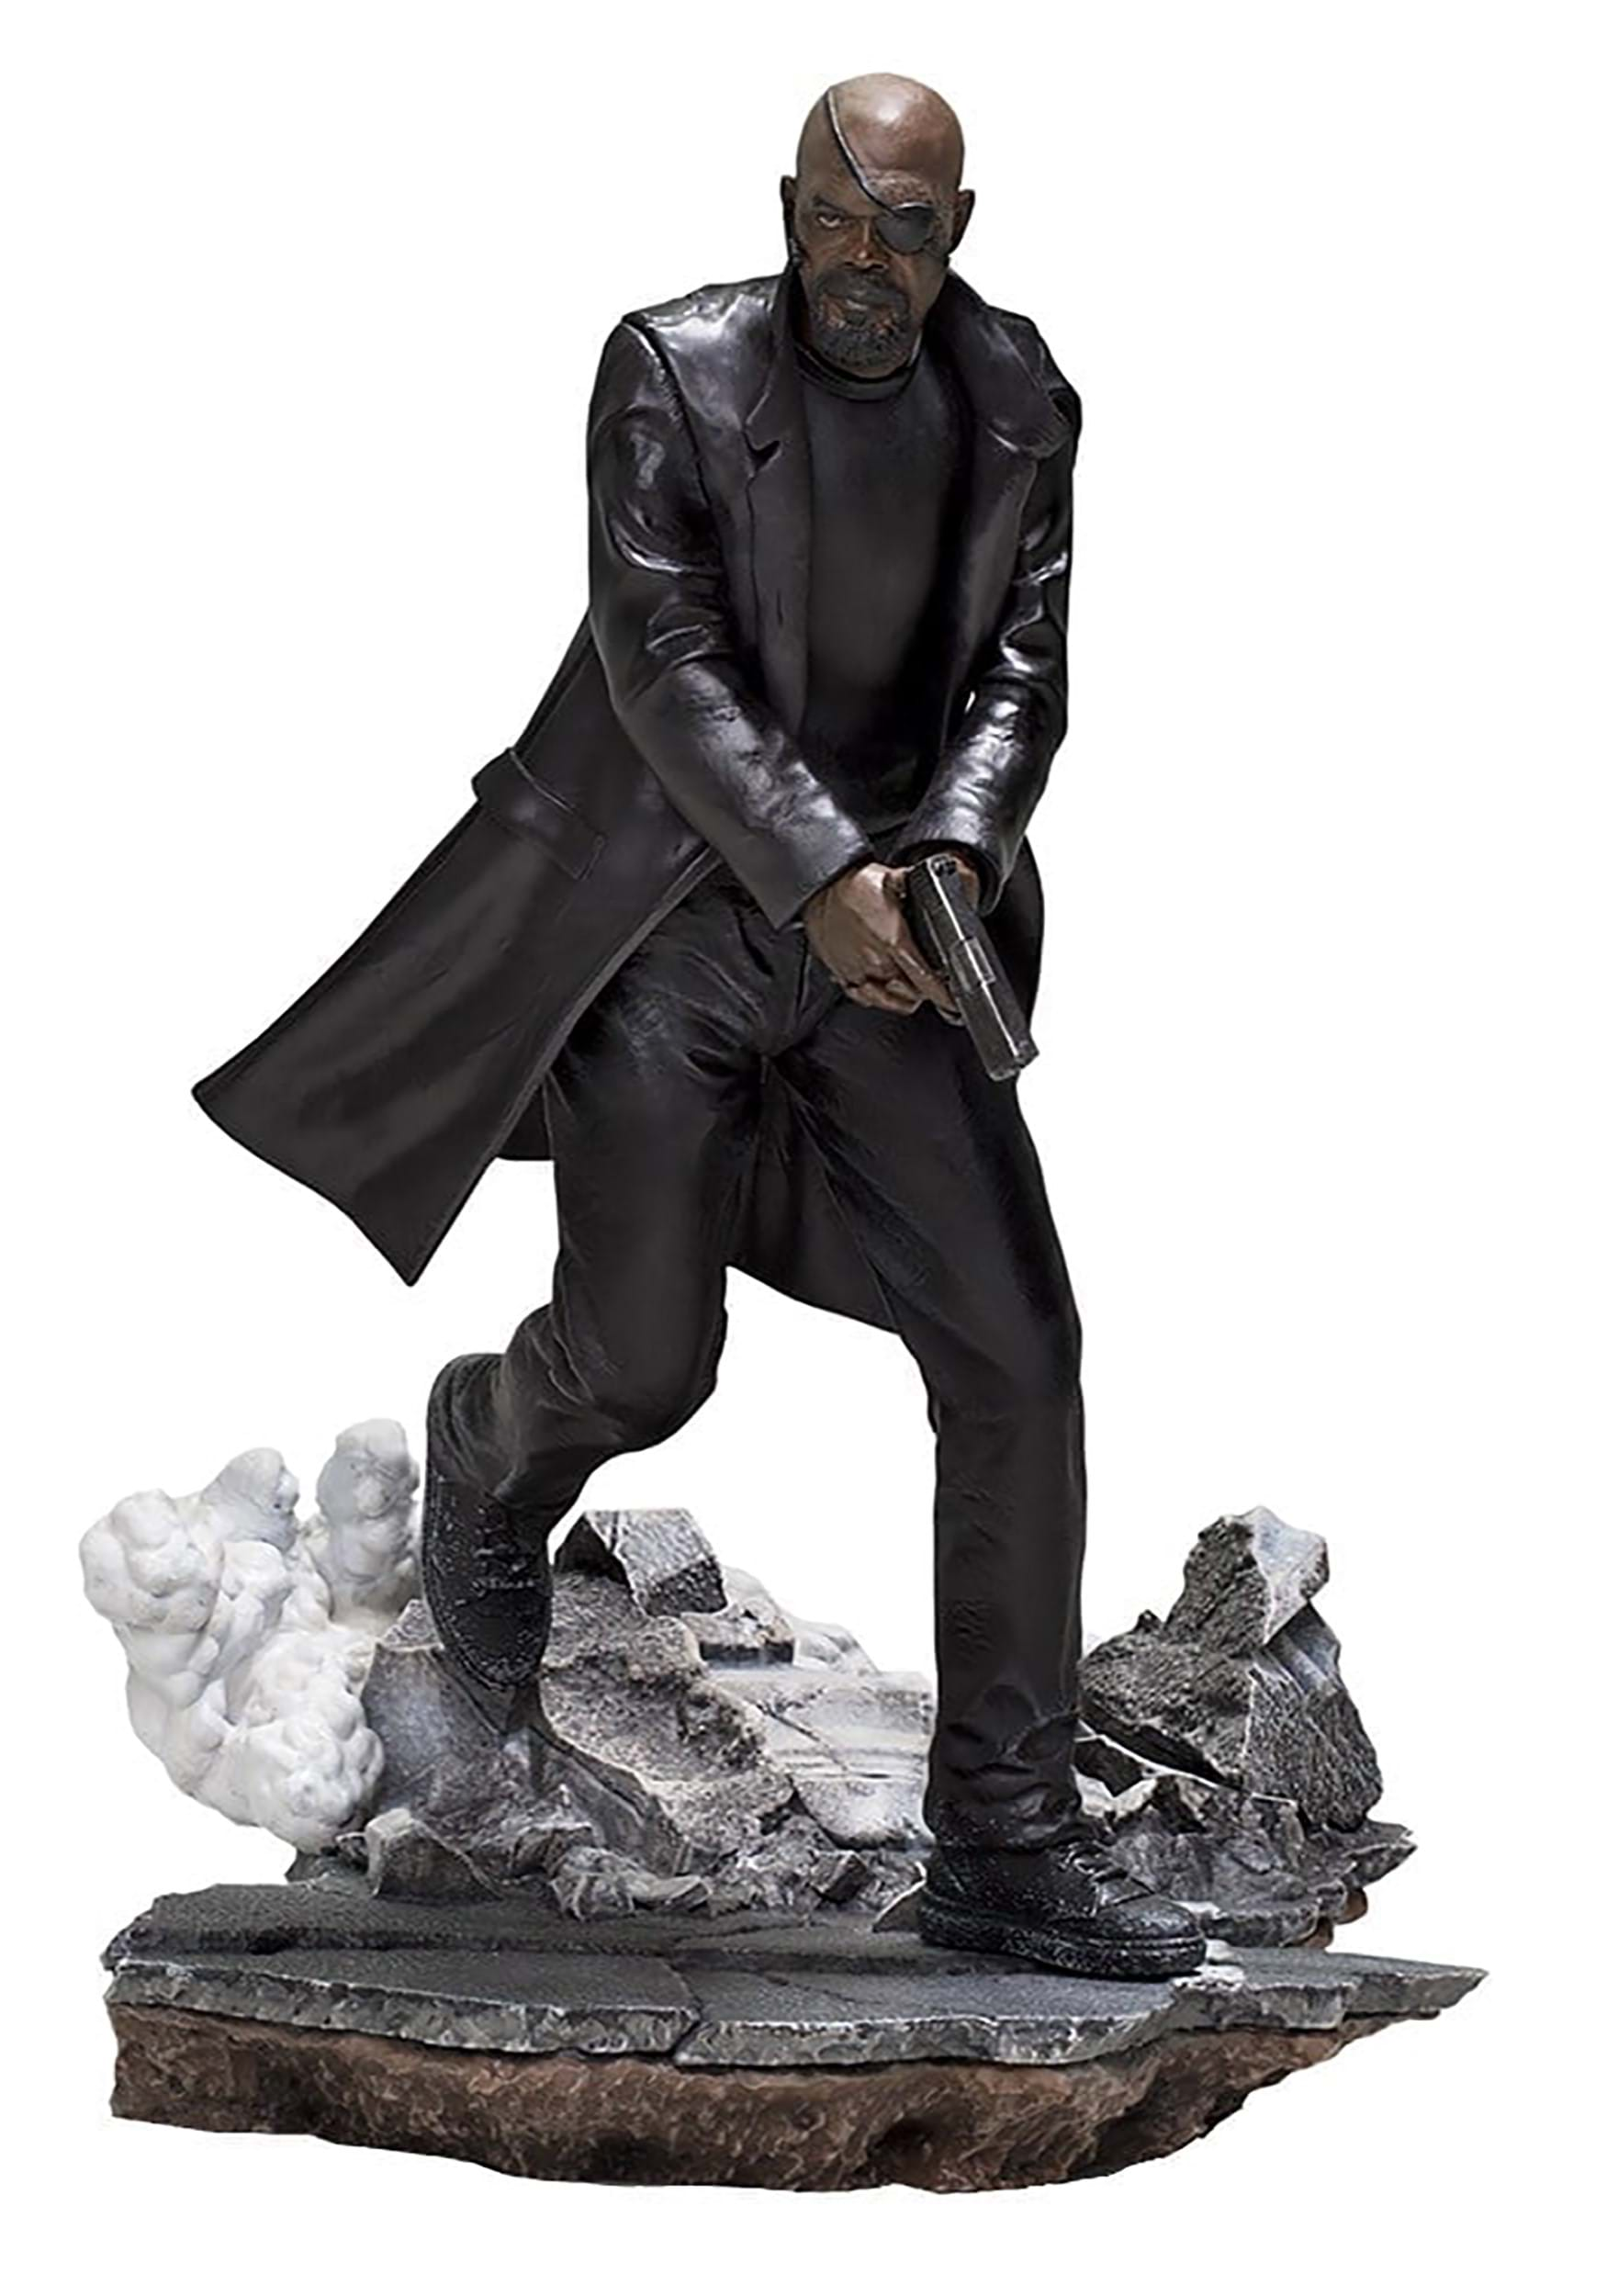 1/10 Scale Statue of Spider-Man: Far From Home Nick Fury